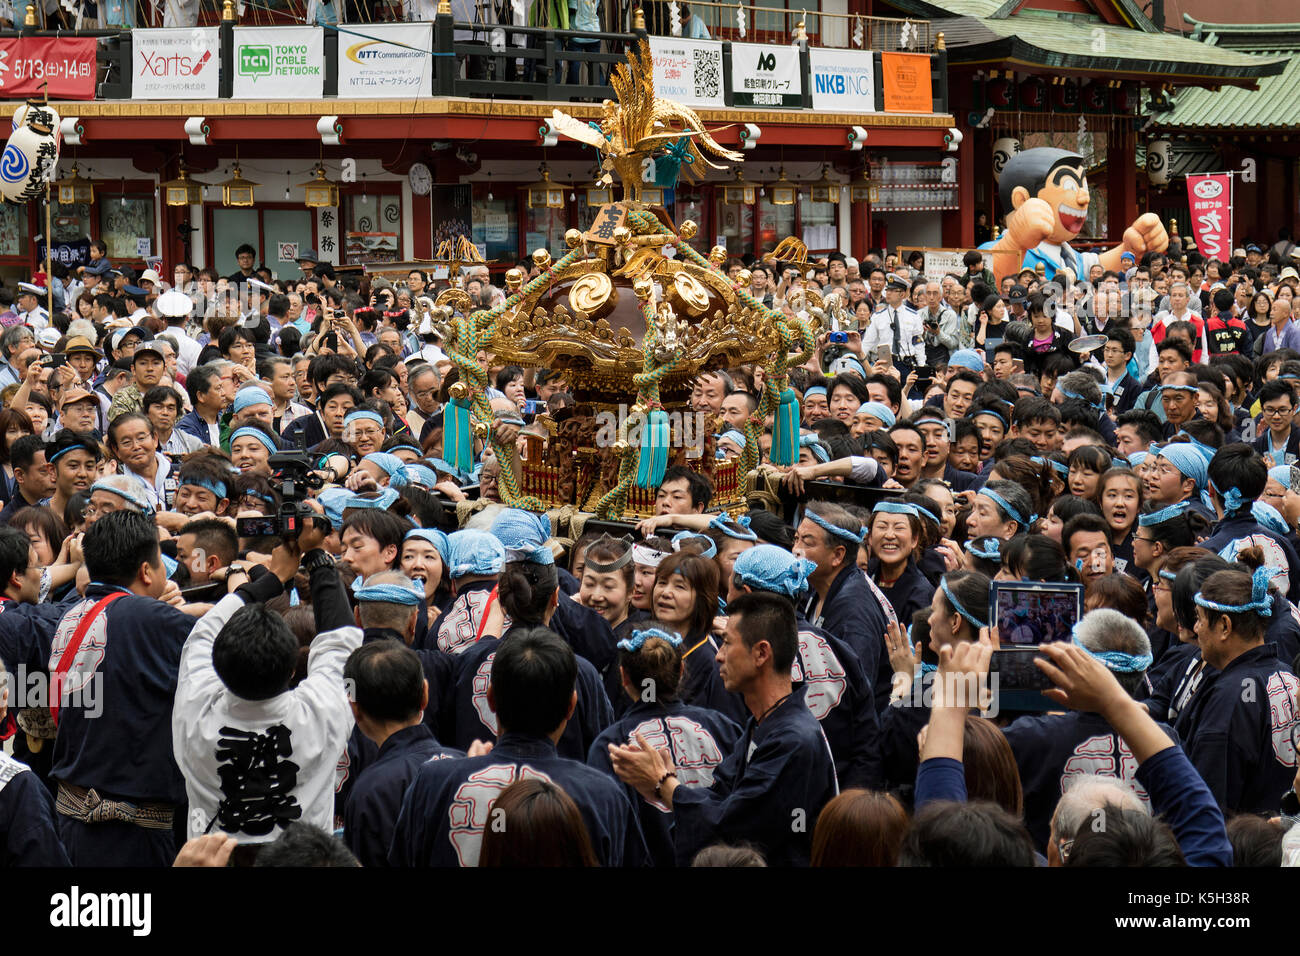 Tokyo, Japan - May 14, 2017: Kanda Matsuri Festival, a parade of portable shrines named mikoshi - Stock Image